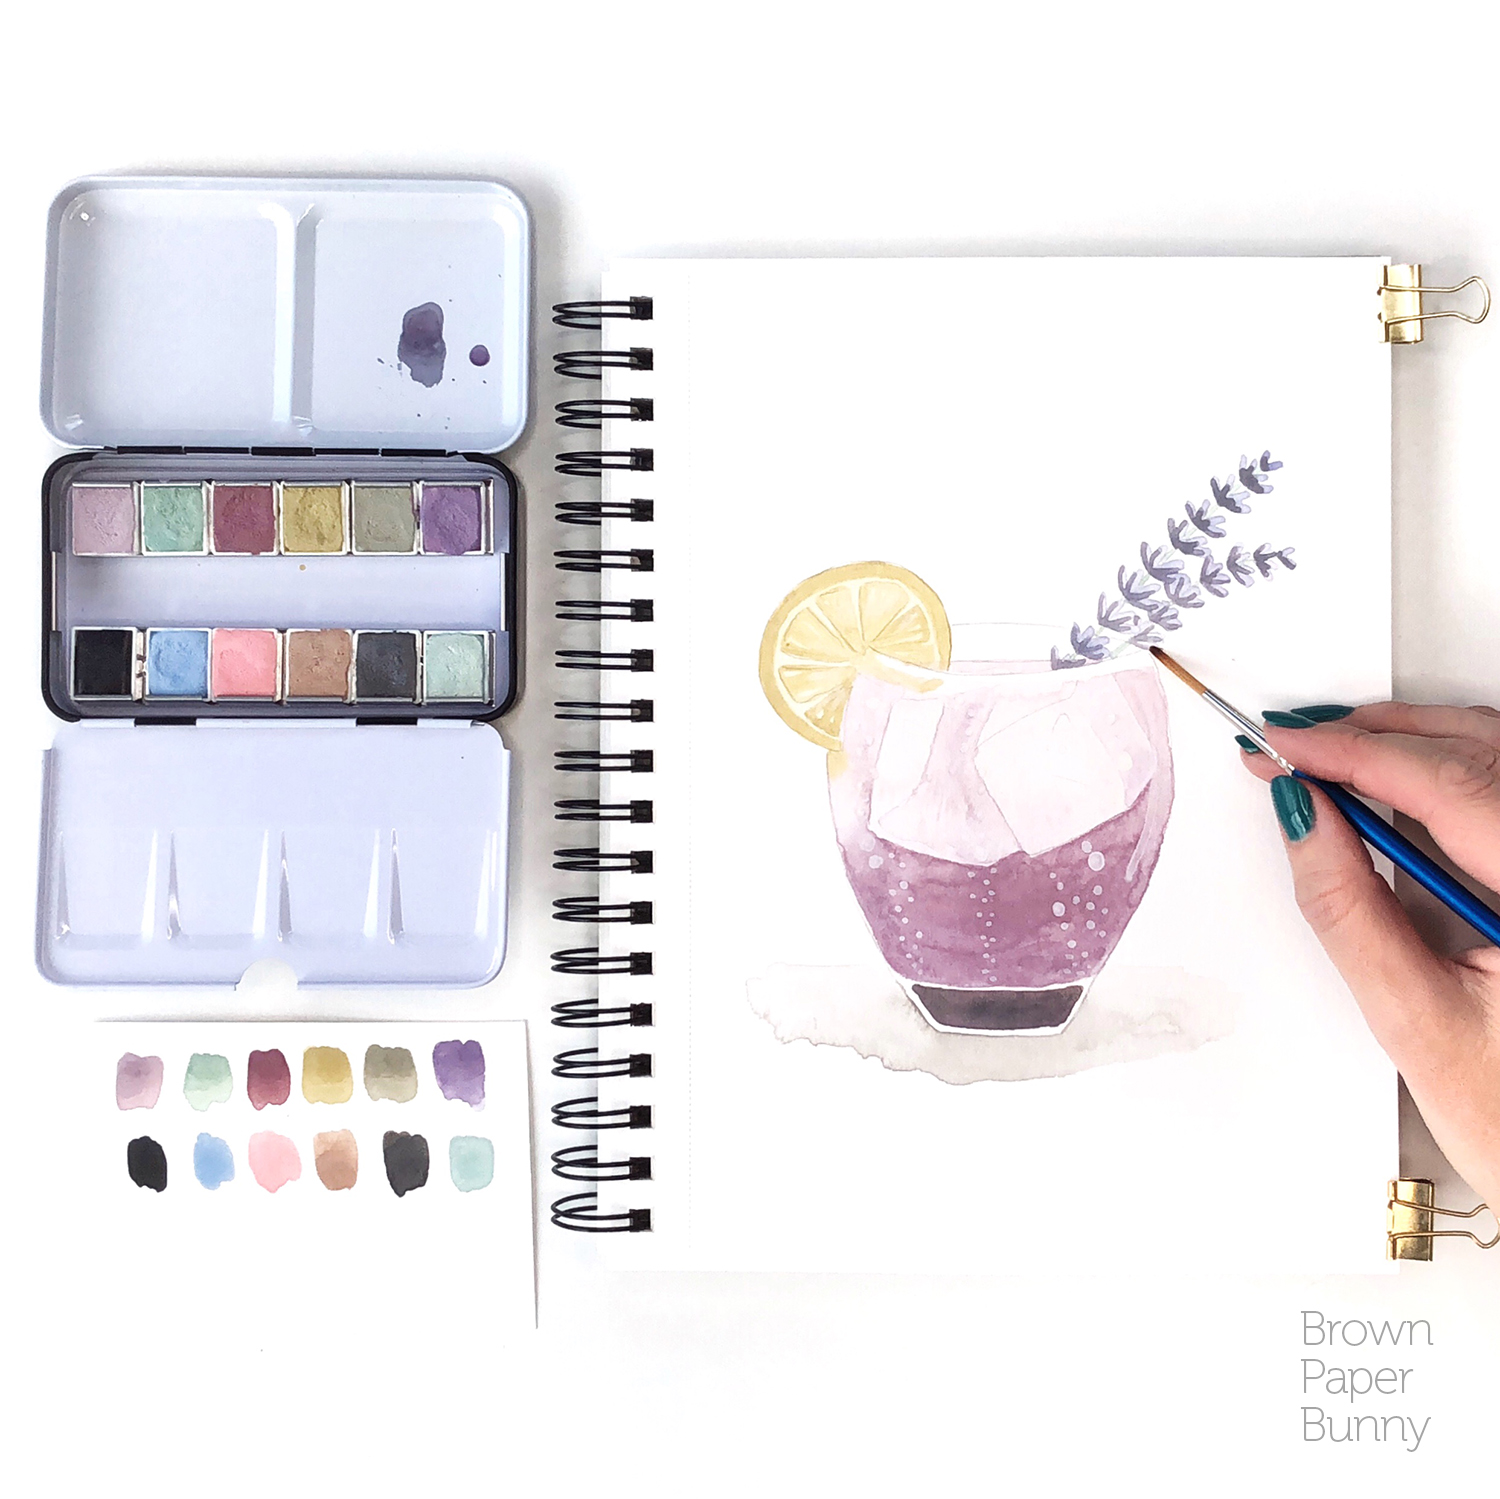 Watercolor illustration created for Prima Watercolors to launch their new Vintage Pastel set.